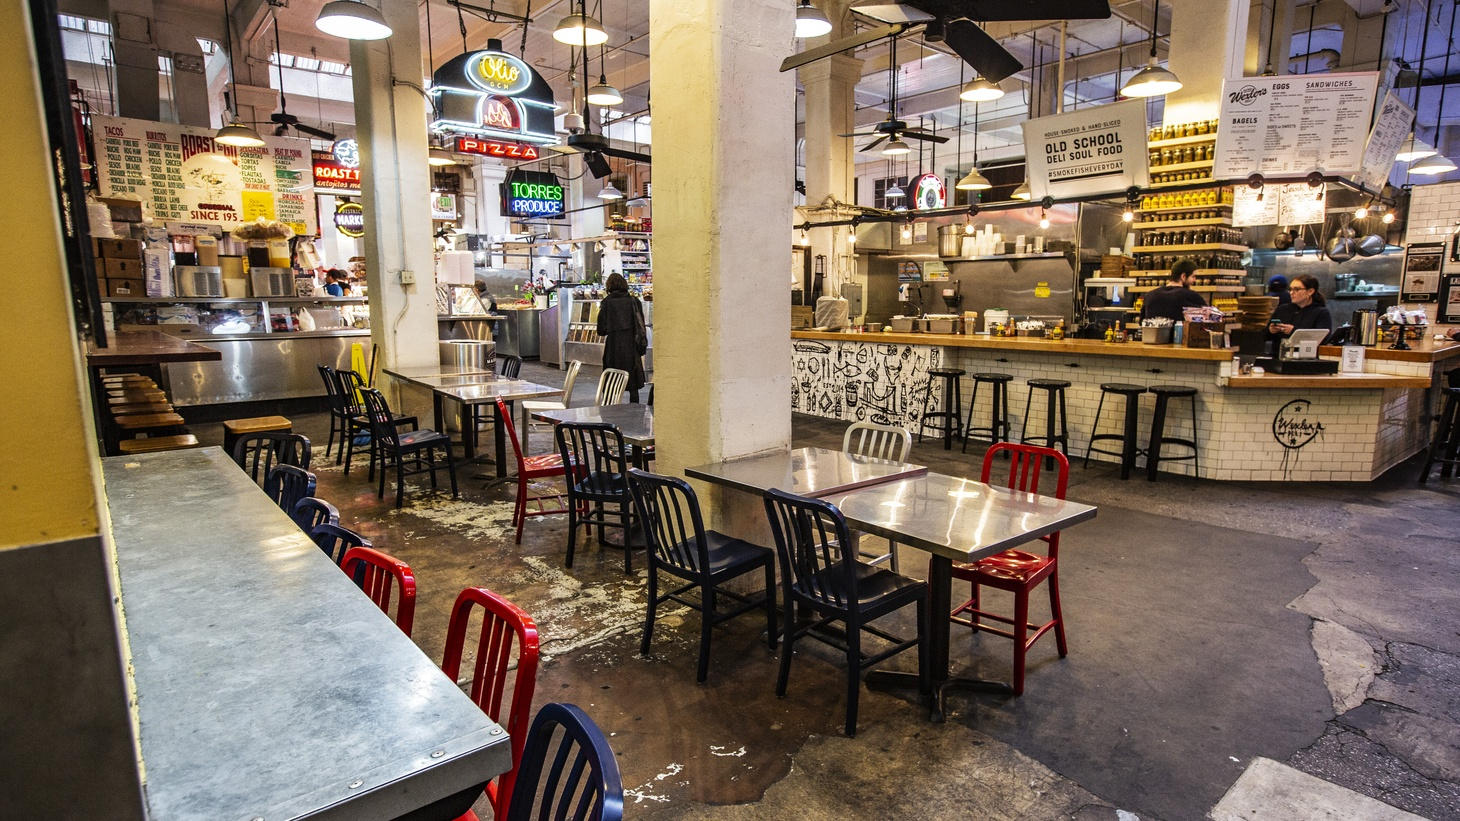 Grand Central Market in downtown LA is largely empty of customers during the COVID-19 pandemic. Gov. Gavin Newsom said this week that the state could face a $54 billion shortfall without federal aid.